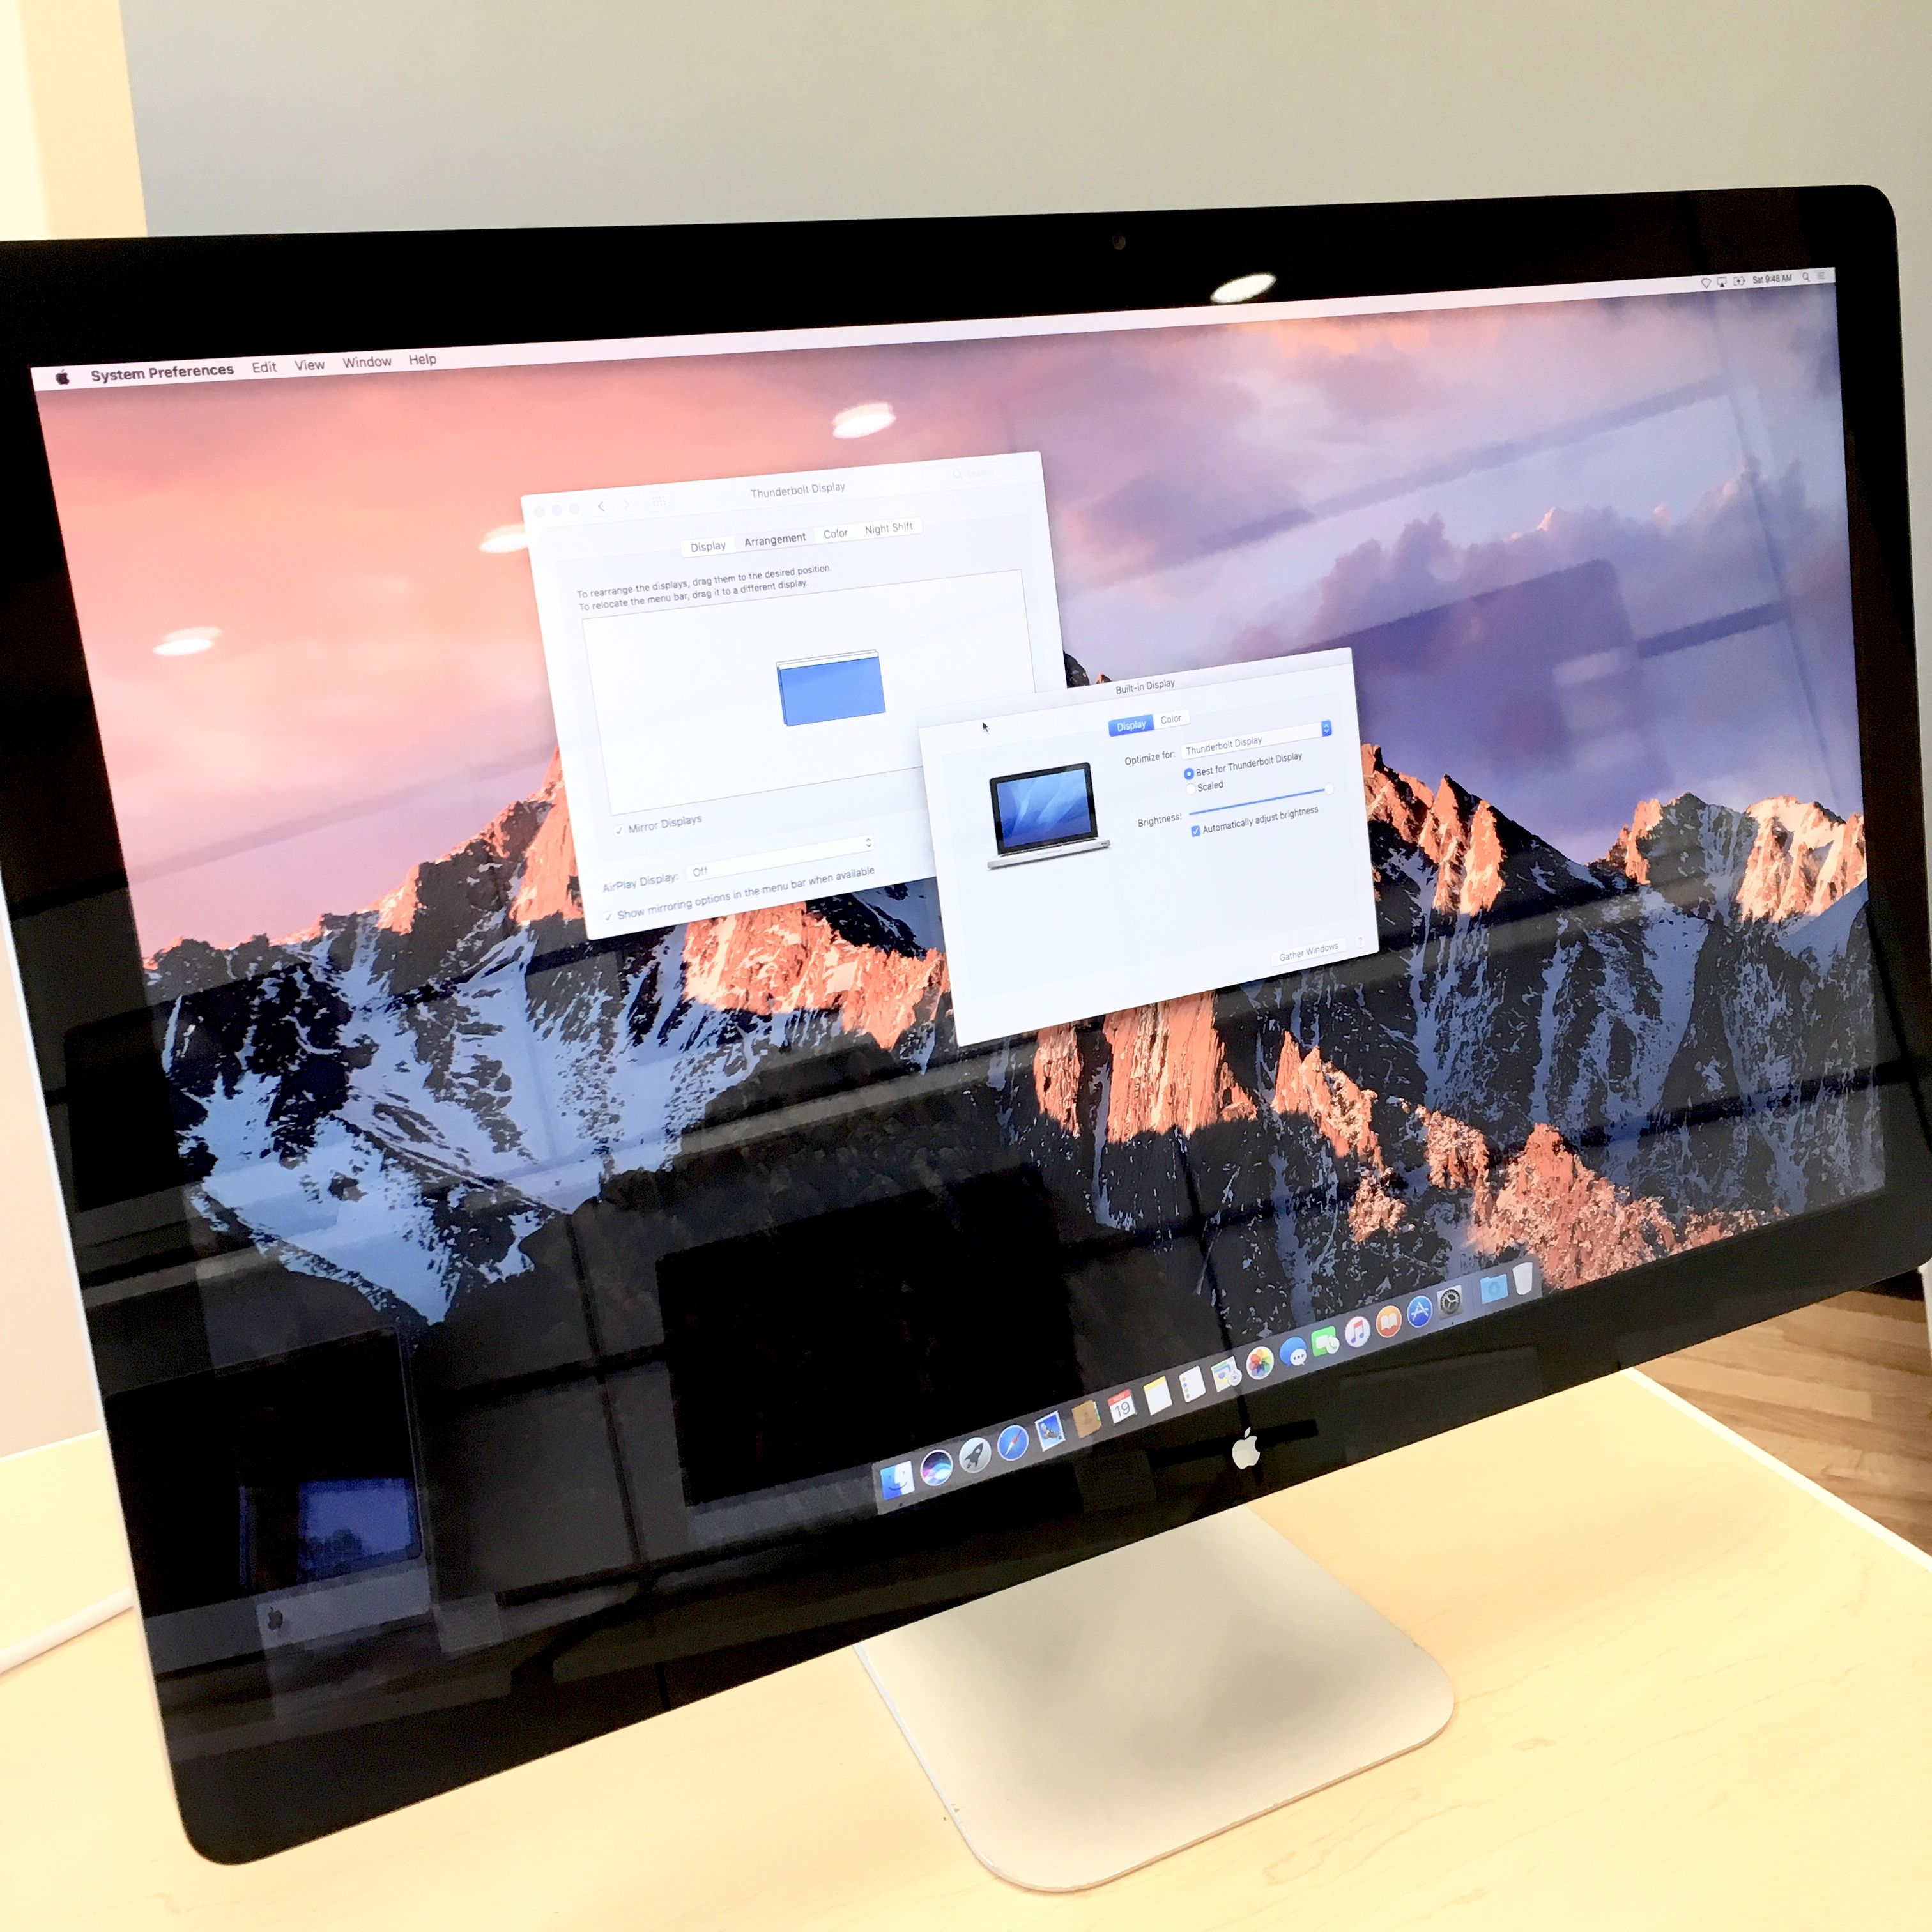 Apple 27 Thunderbolt Display Only 499 Built In Hd Facetime Camera Mic Speaker And Magsafe Charging Cable 2560 By Mac Mini Apple Products Magsafe